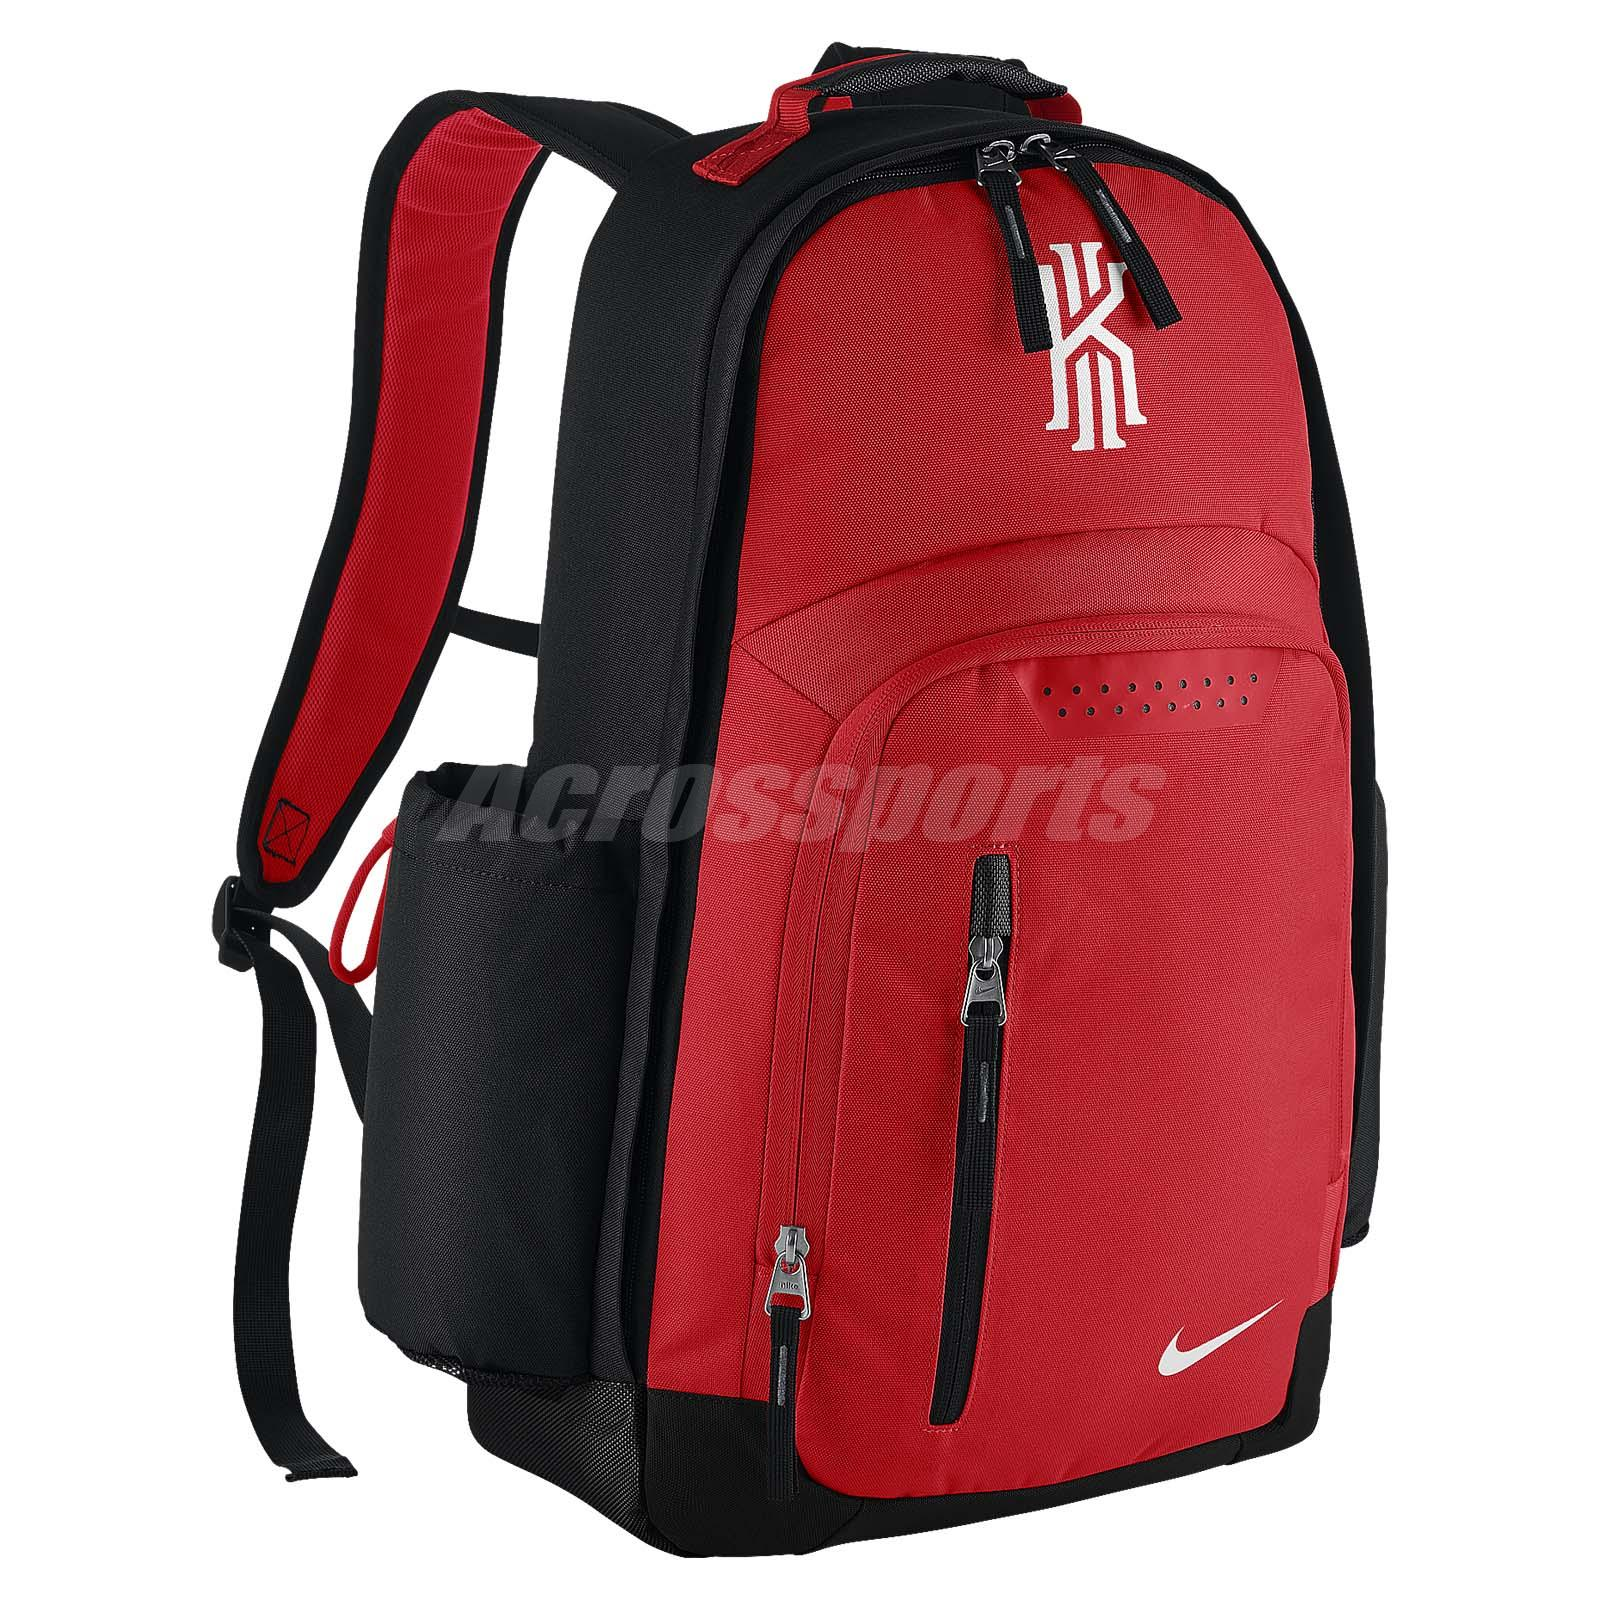 5c4352a4b057 kyrie irving backpack cheap   OFF73% The Largest Catalog Discounts